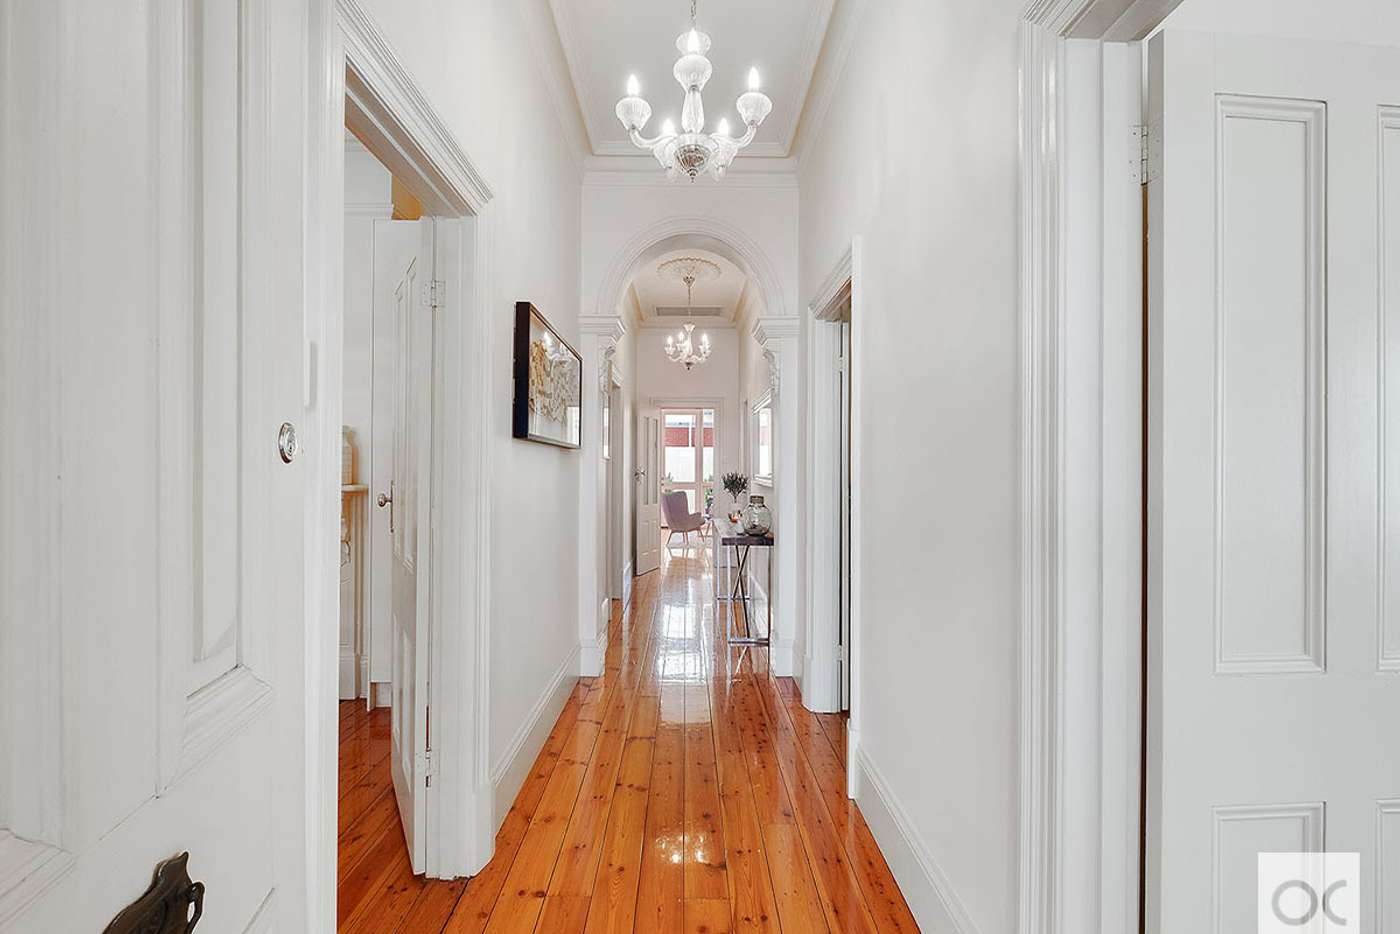 Fifth view of Homely house listing, 26 Darebin Street, Mile End SA 5031